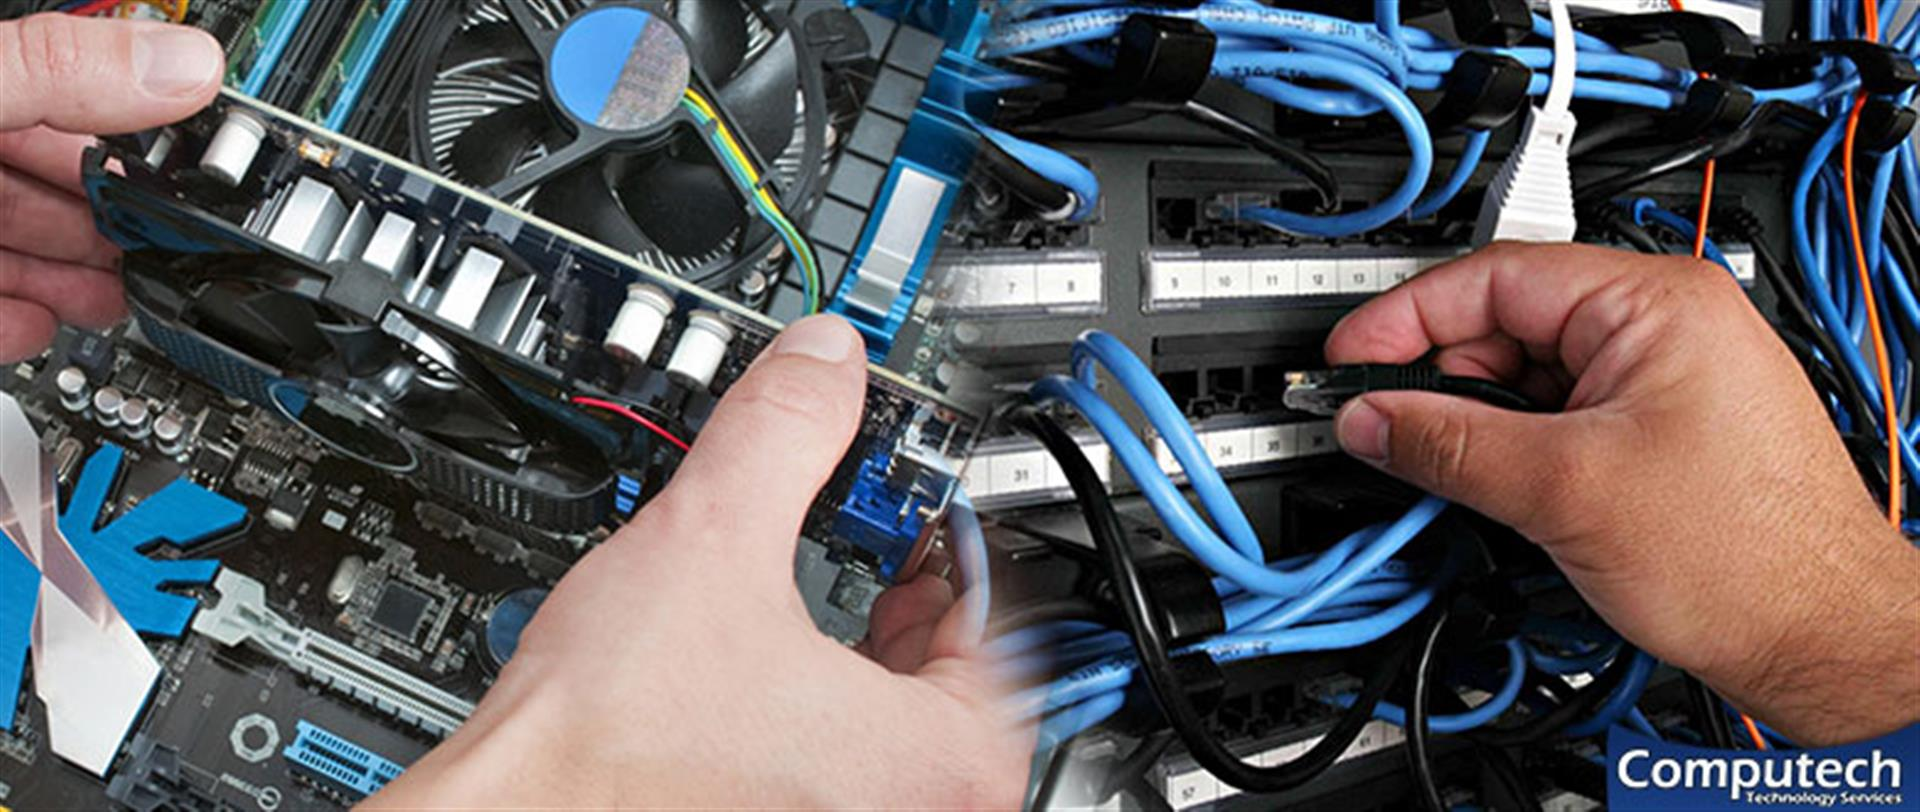 Trussville Alabama Onsite Computer & Printer Repair, Networks, Telecom & Data Wiring Solutions